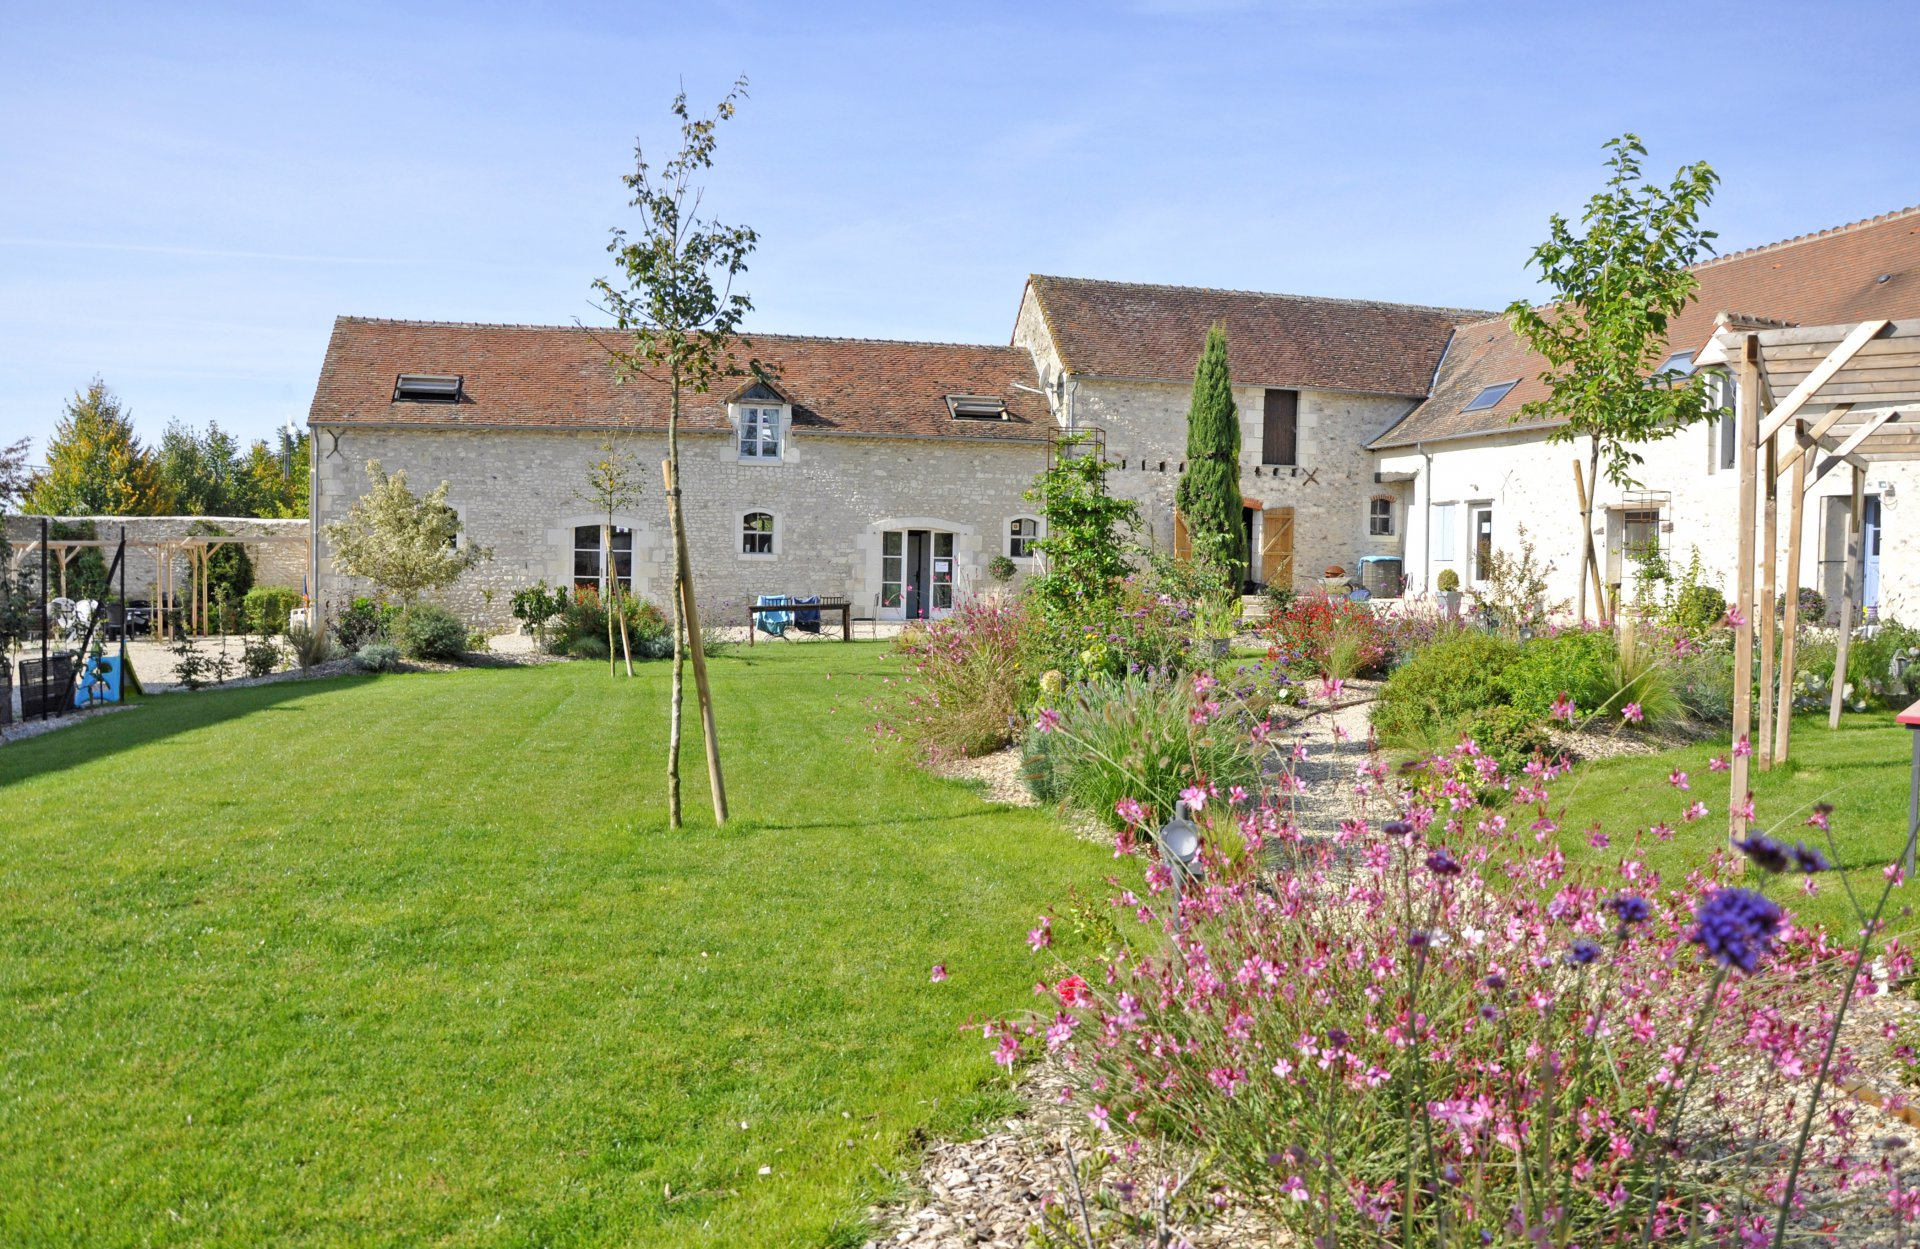 Charming restored farmhouse with horse facilities, heated pool and a cottage rental business.